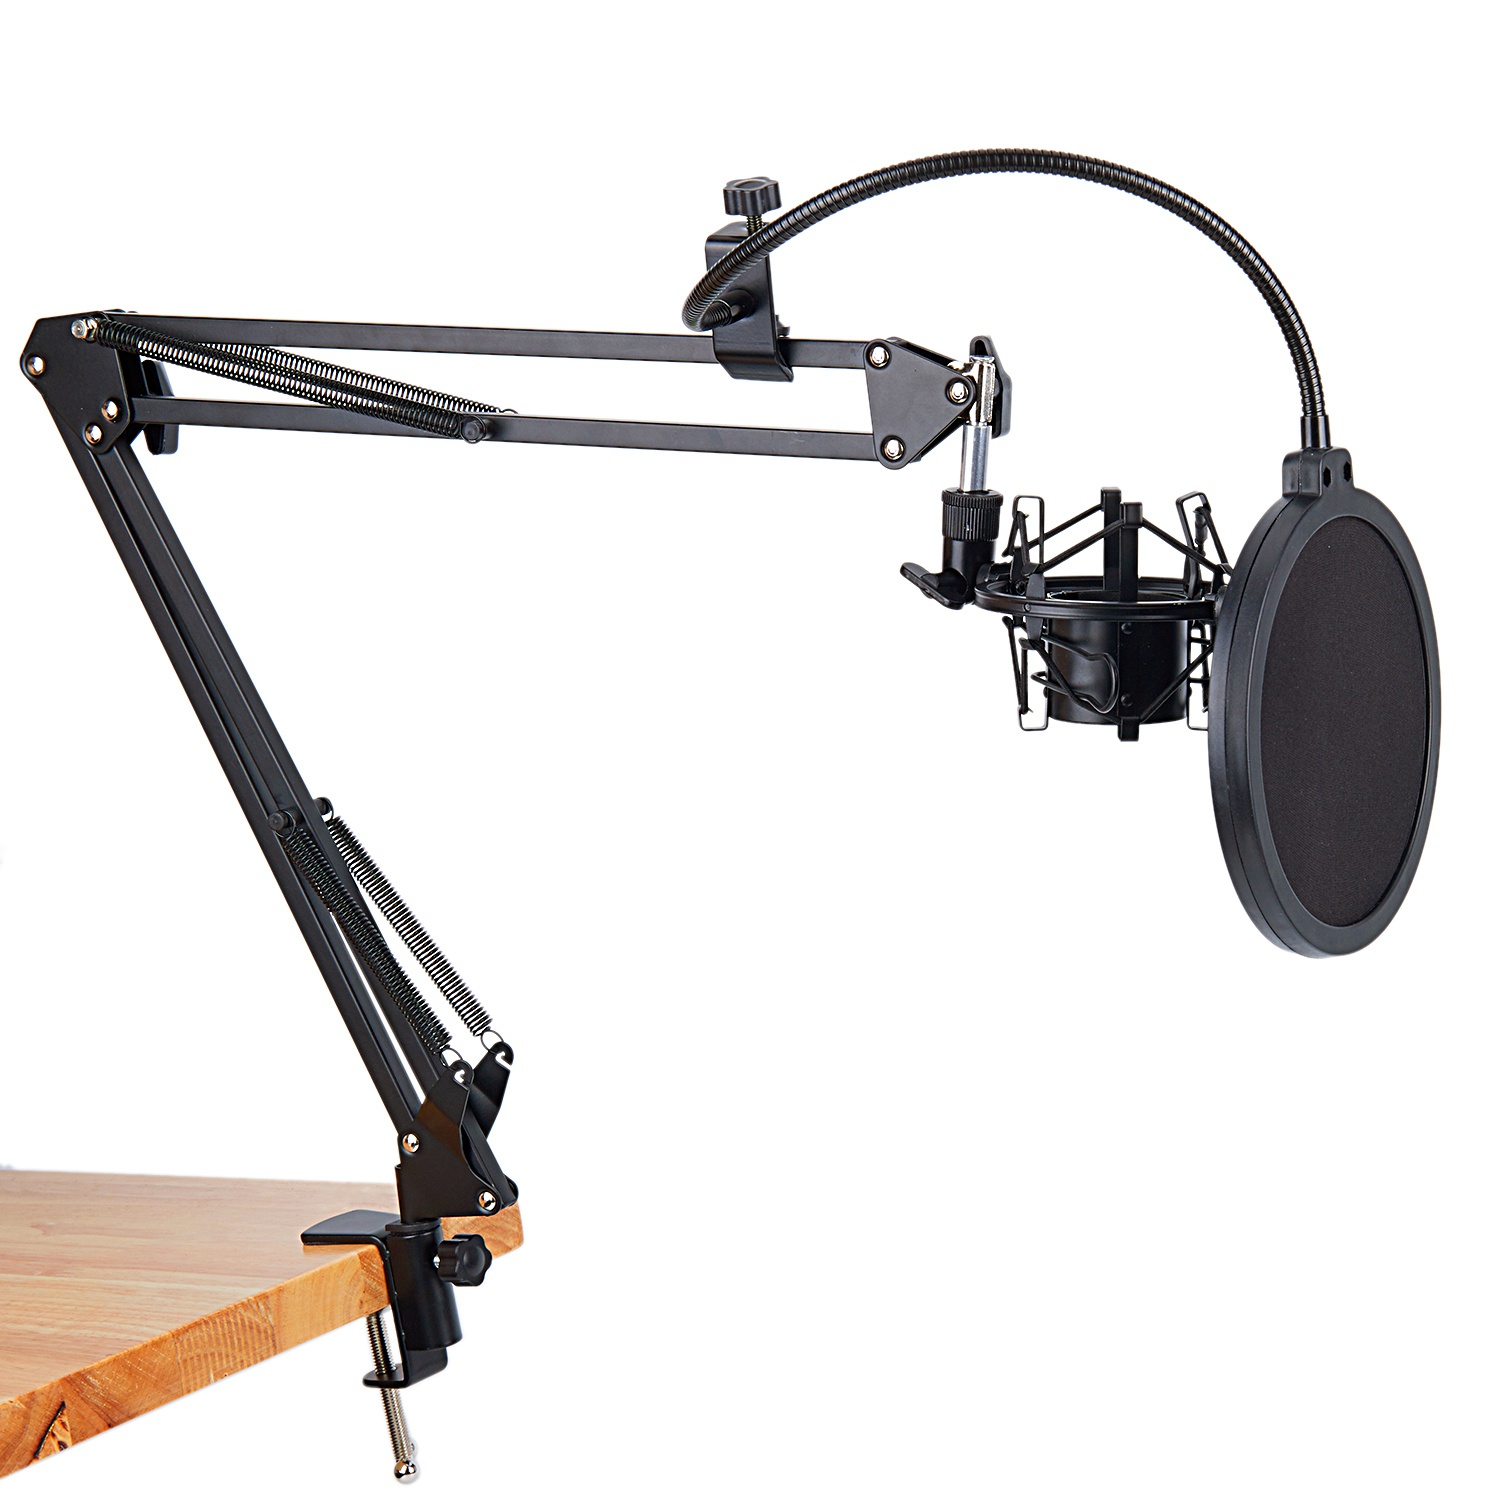 NB-35 Microphone Scissor Arm Stand and Table Mounting Clamp&NW Filter Windscreen Shield & Metal Mount Kit 1